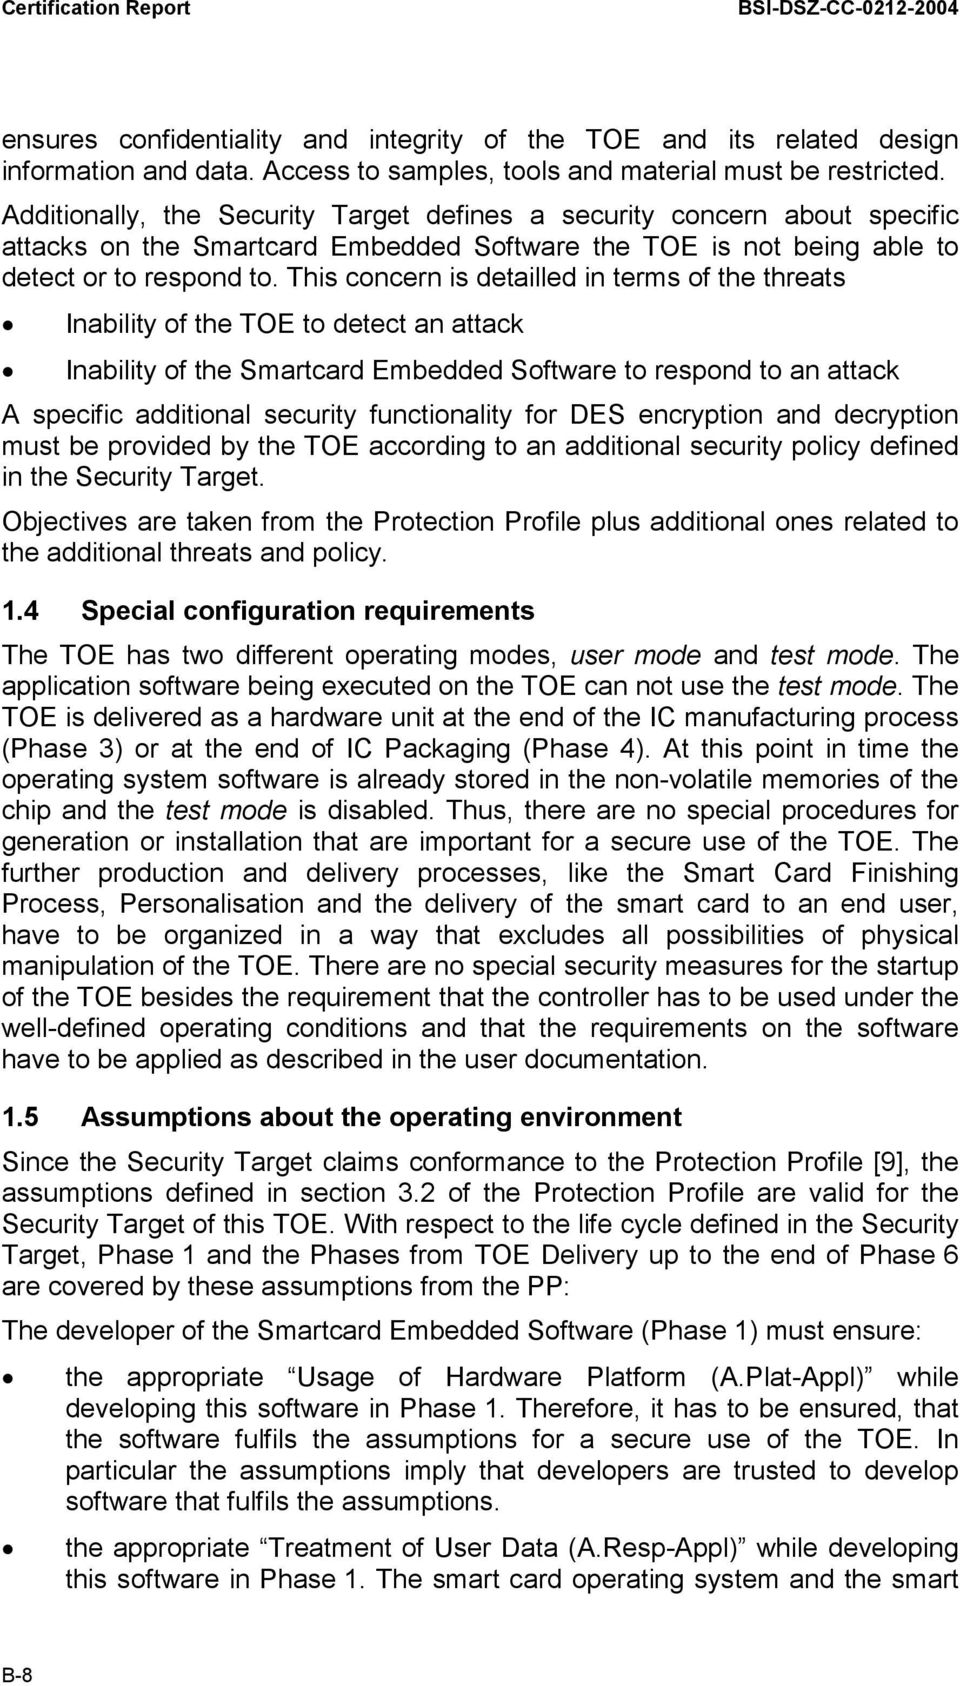 This concern is detailled in terms of the threats Inability of the TOE to detect an attack Inability of the Smartcard Embedded Software to respond to an attack A specific additional security